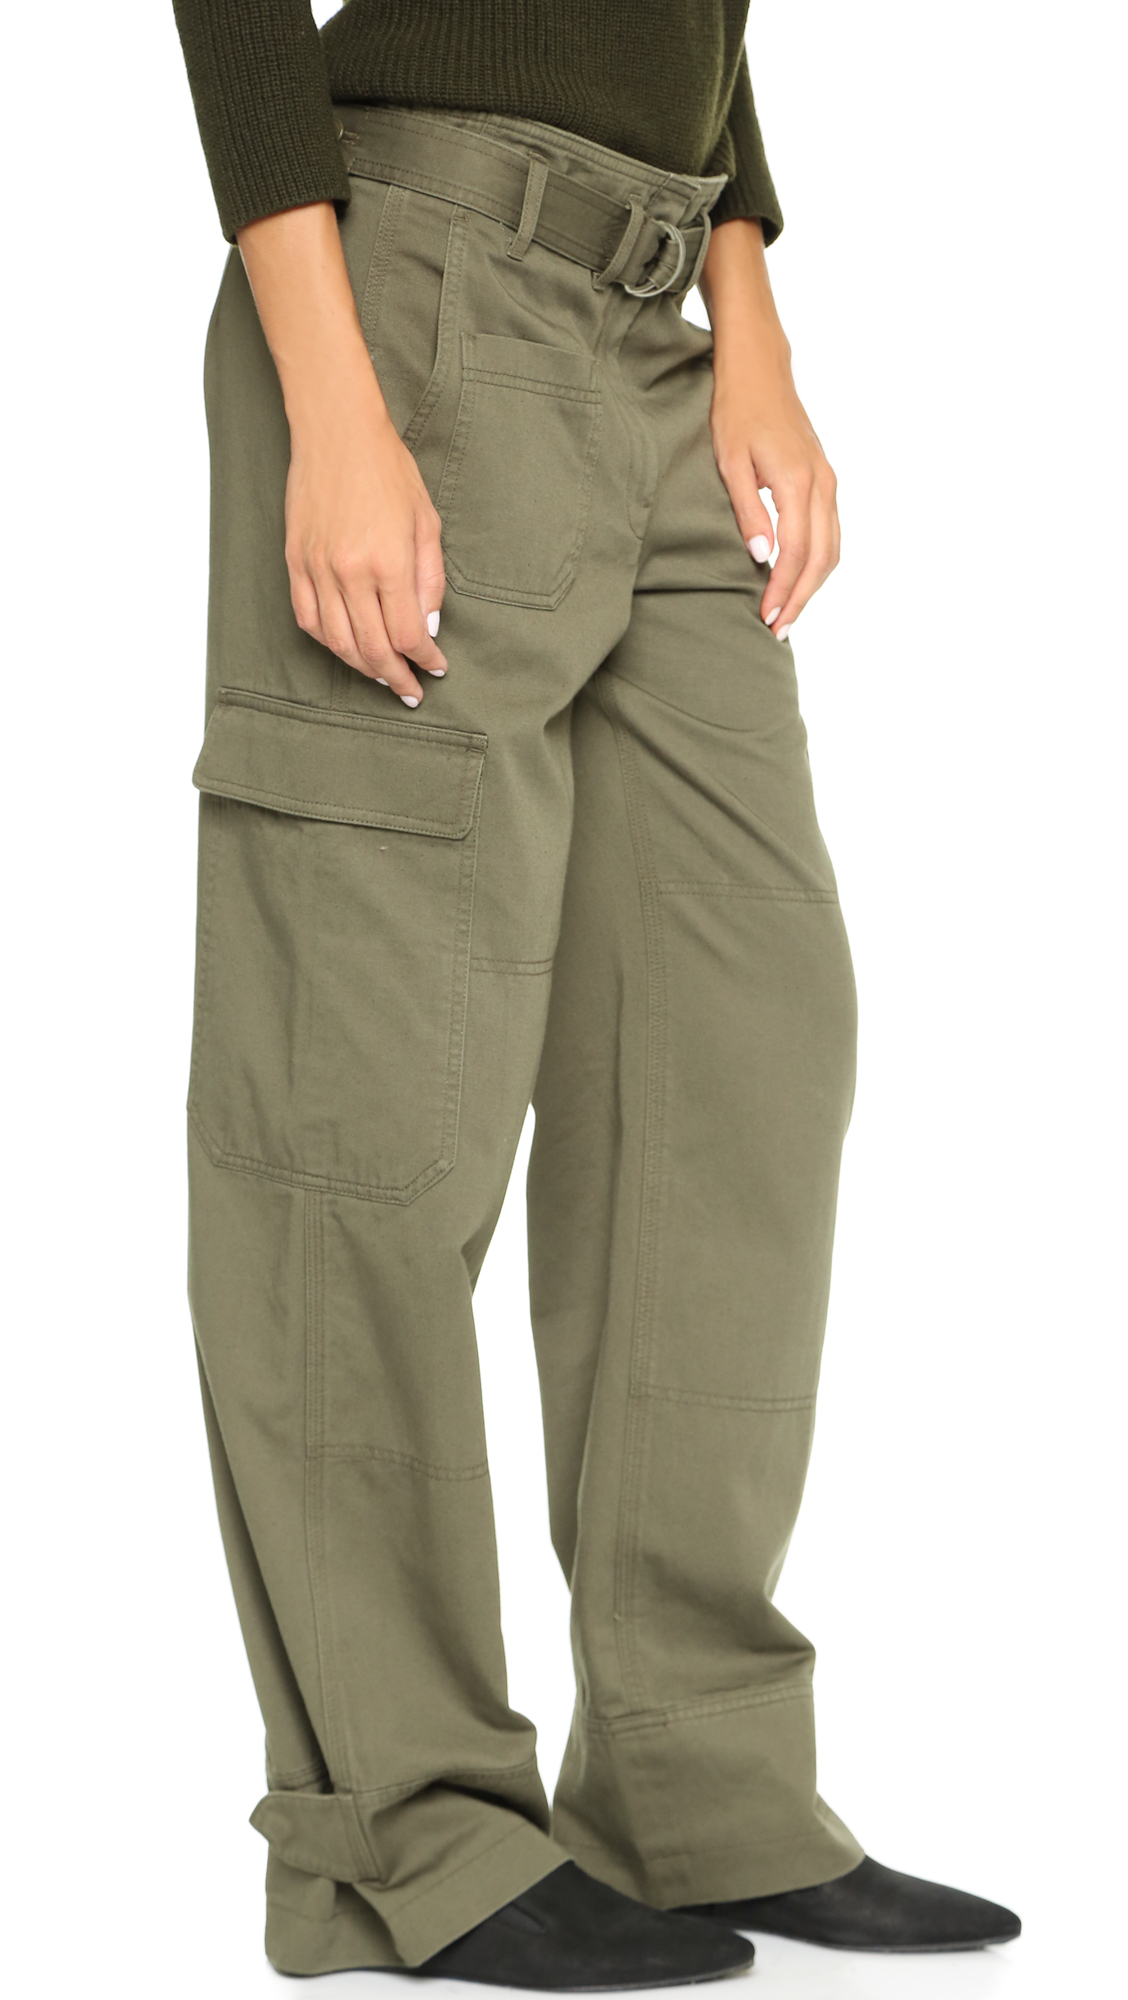 Olive Green Pants for Ladies